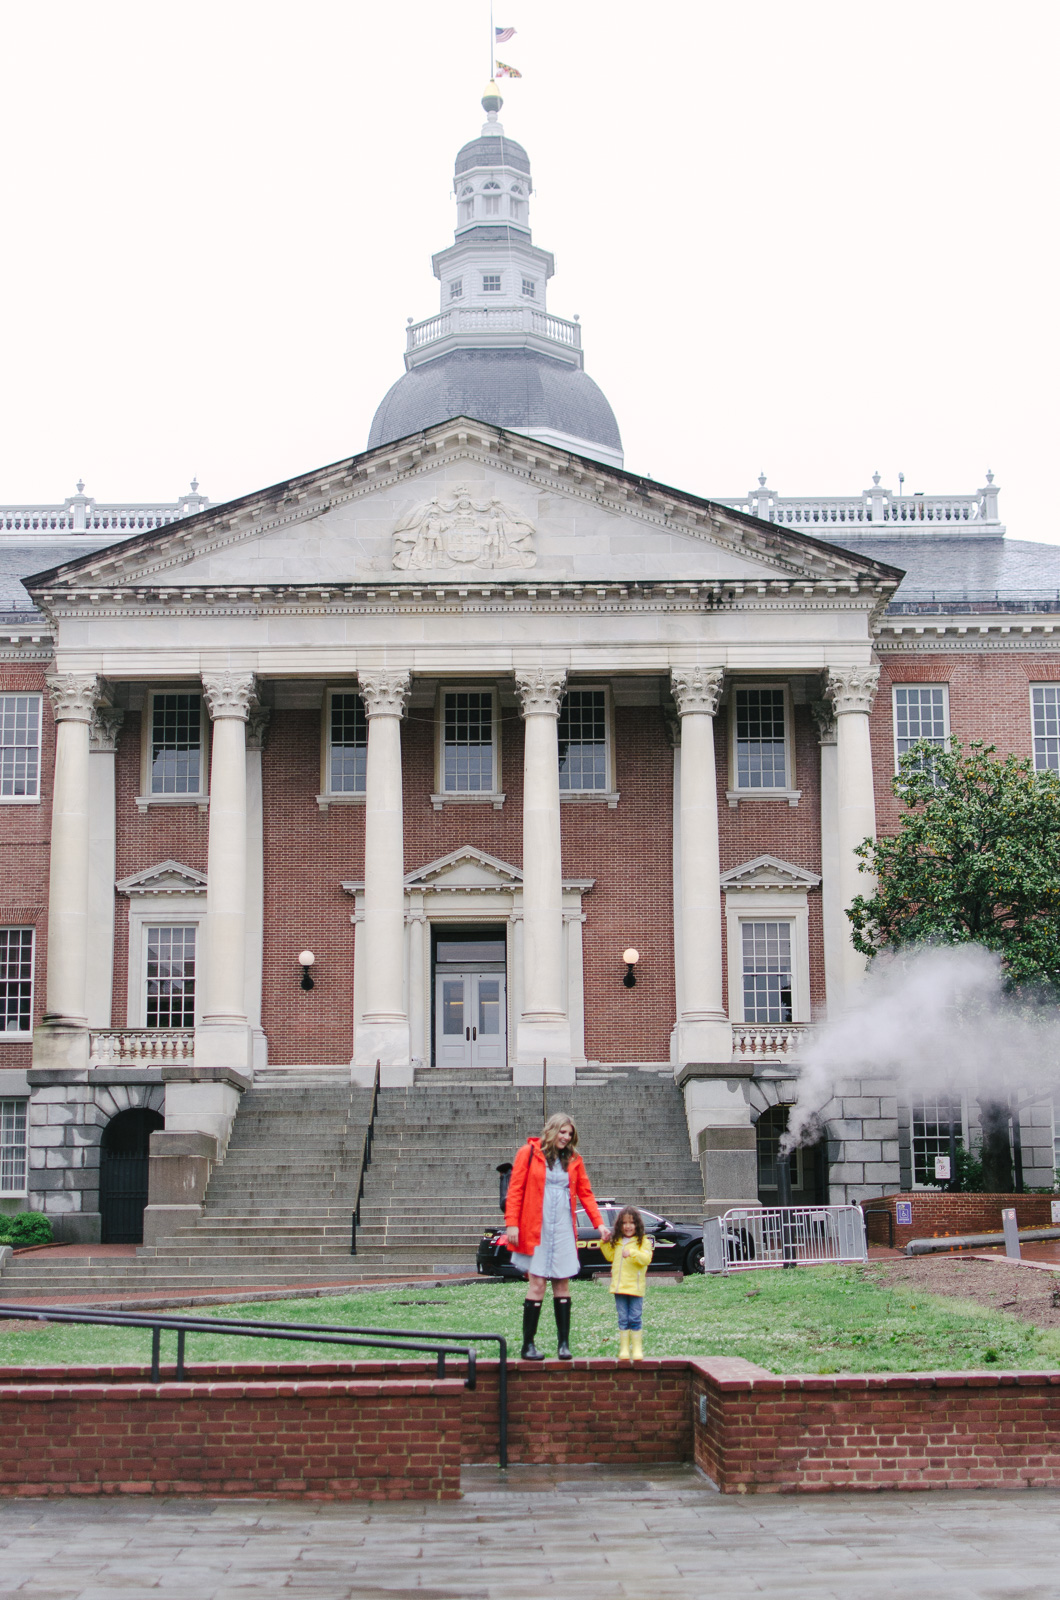 Maryland State House | Don't miss the full Annapolis Weekend Guide: where to eat, what to do, and where to stay! | bylaurenm.com